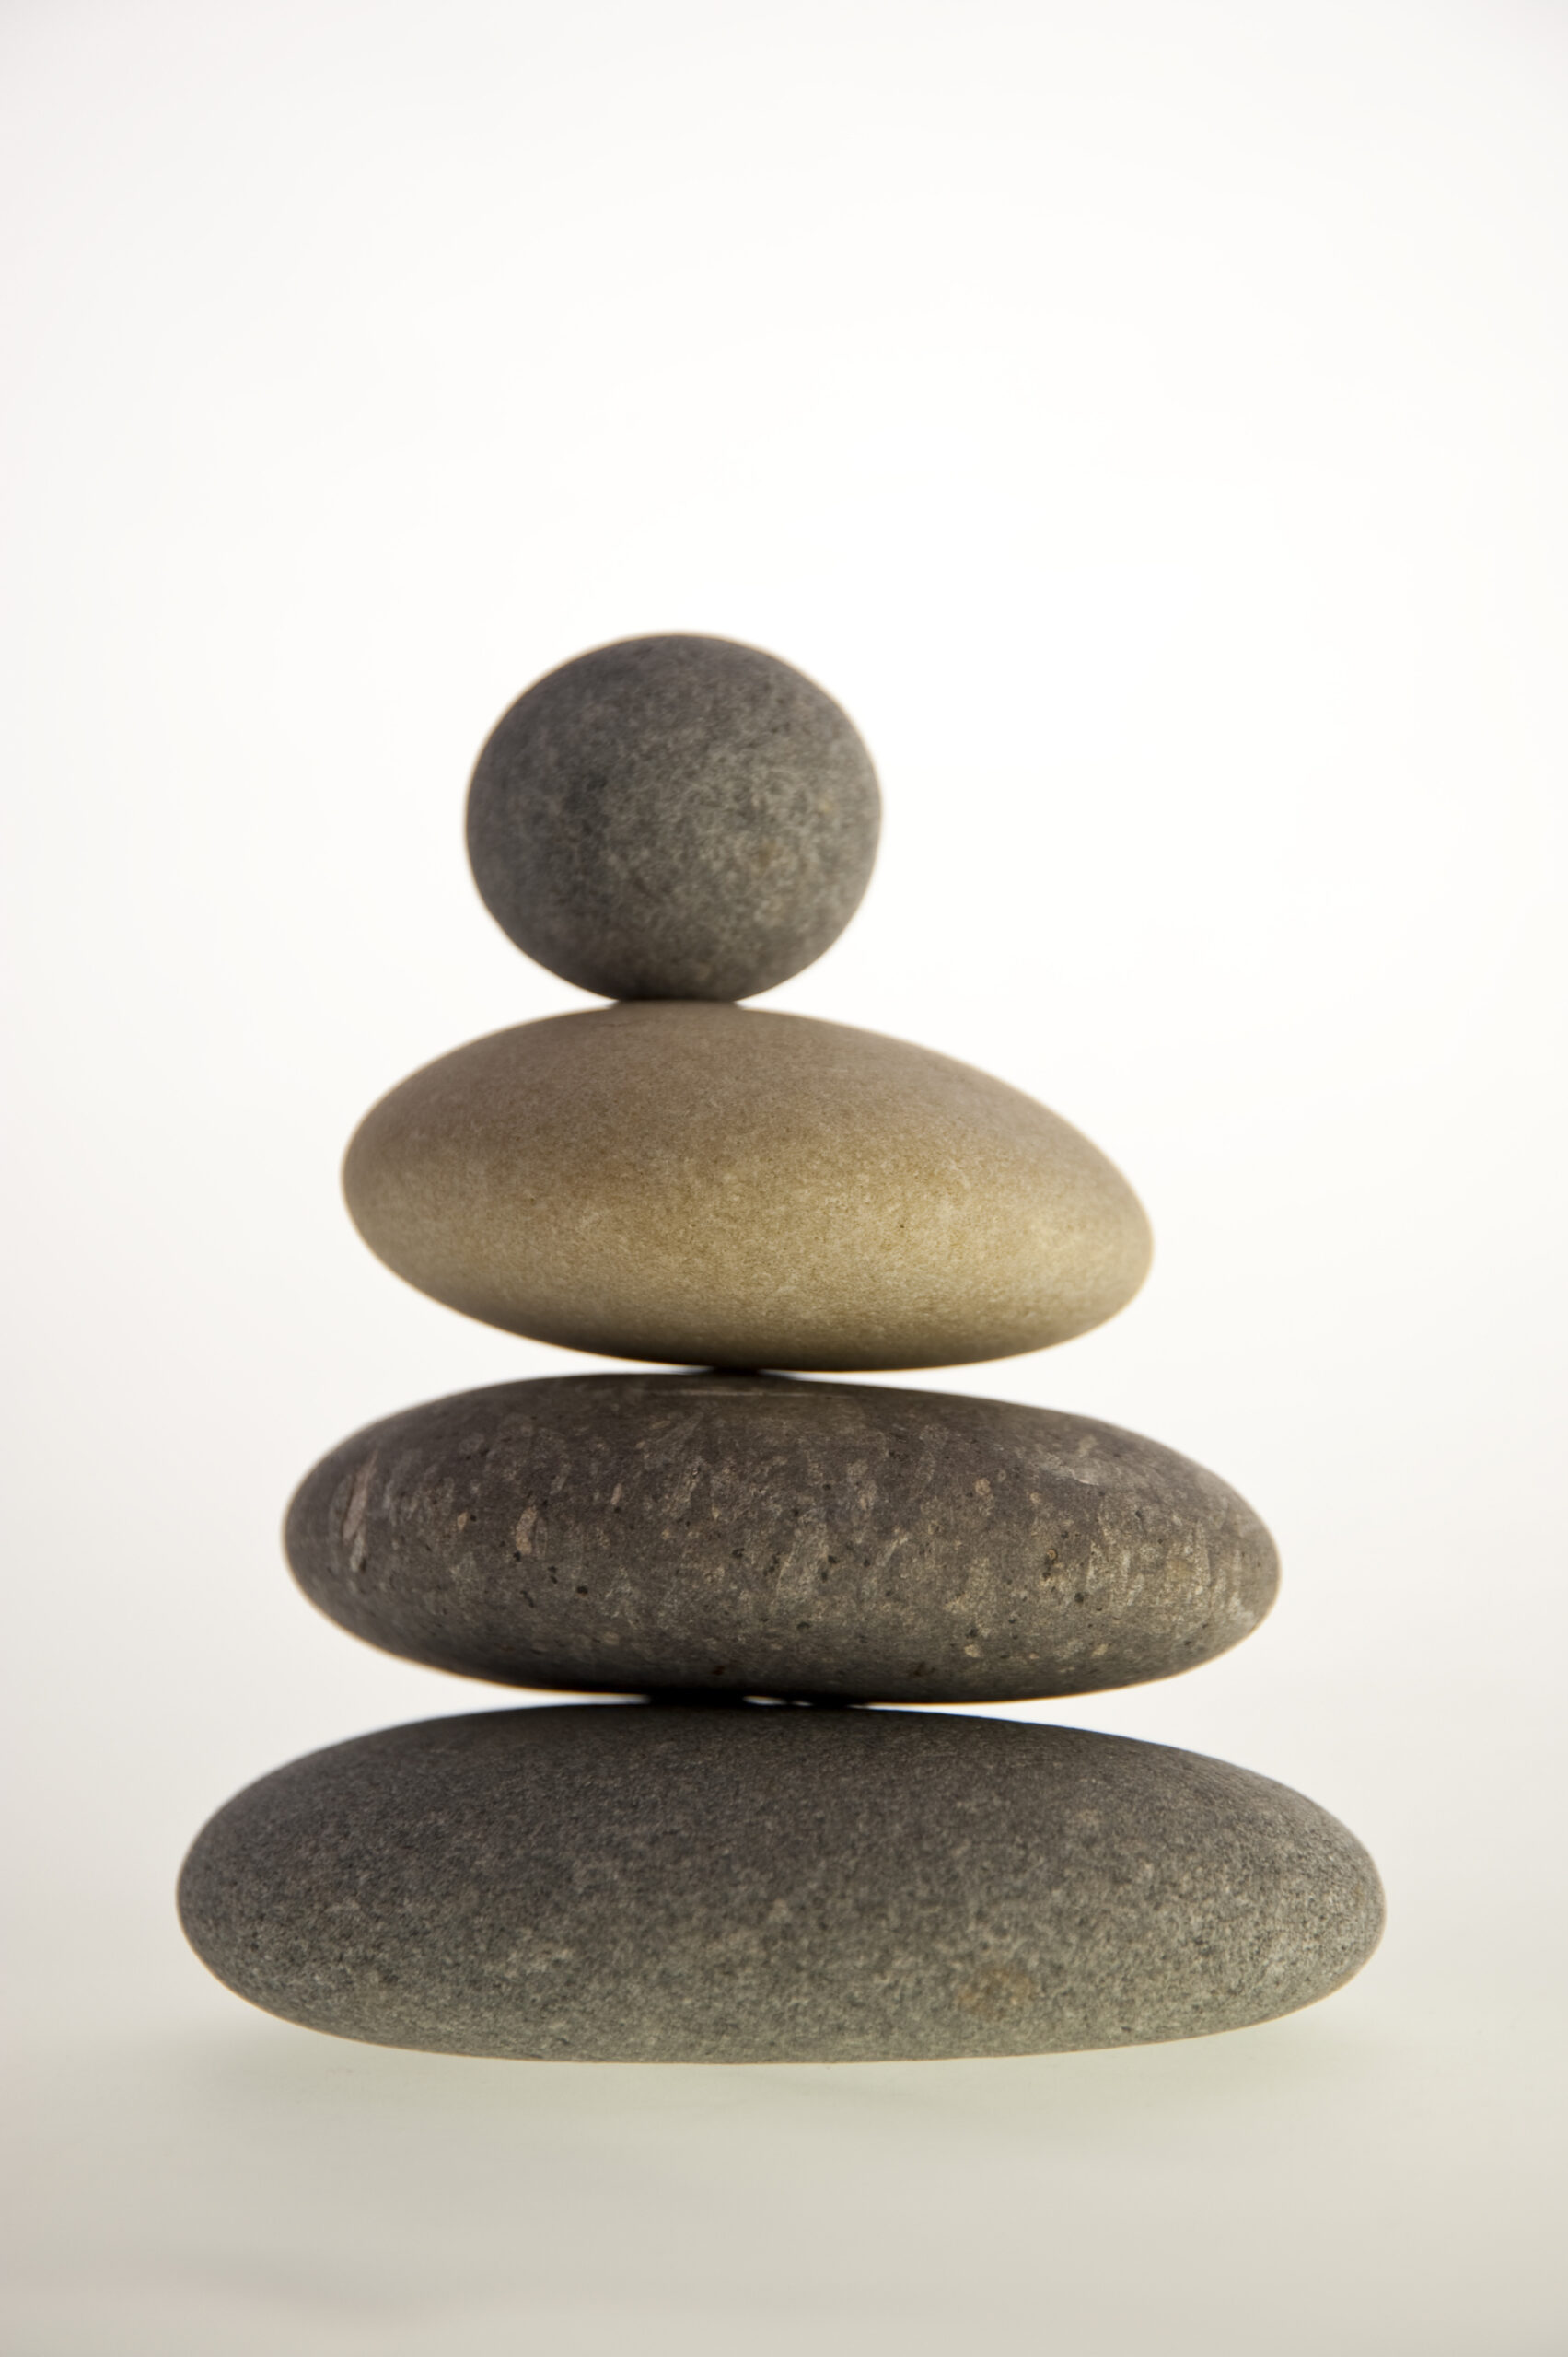 Are we trying too hard to balance everything perfectly?